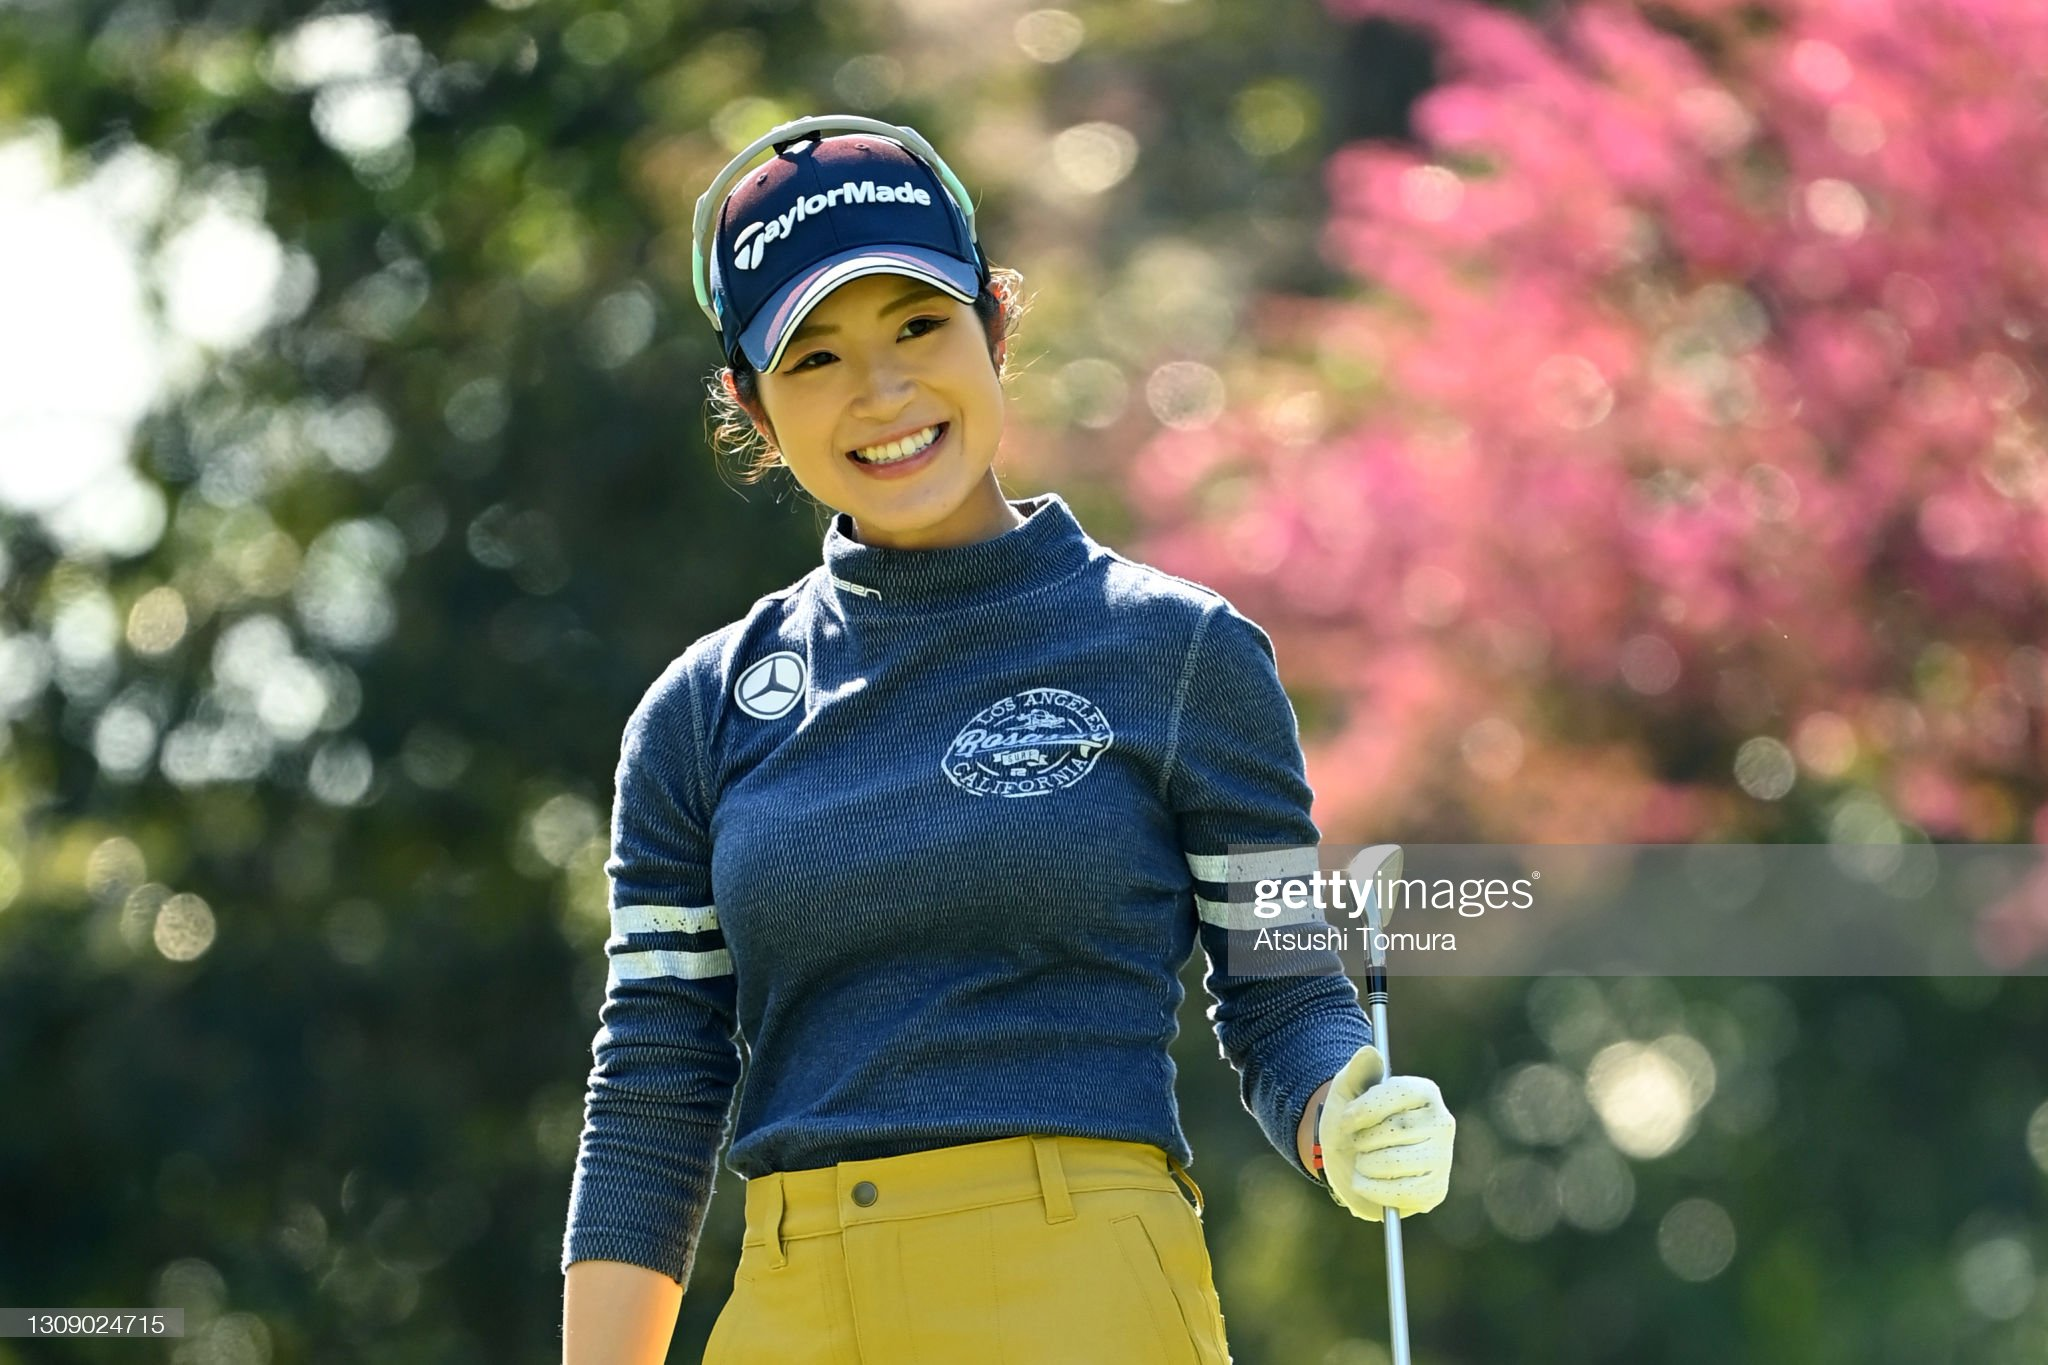 https://media.gettyimages.com/photos/aoi-onishi-of-japan-reacts-after-her-tee-shot-on-the-16th-hole-during-picture-id1309024715?s=2048x2048